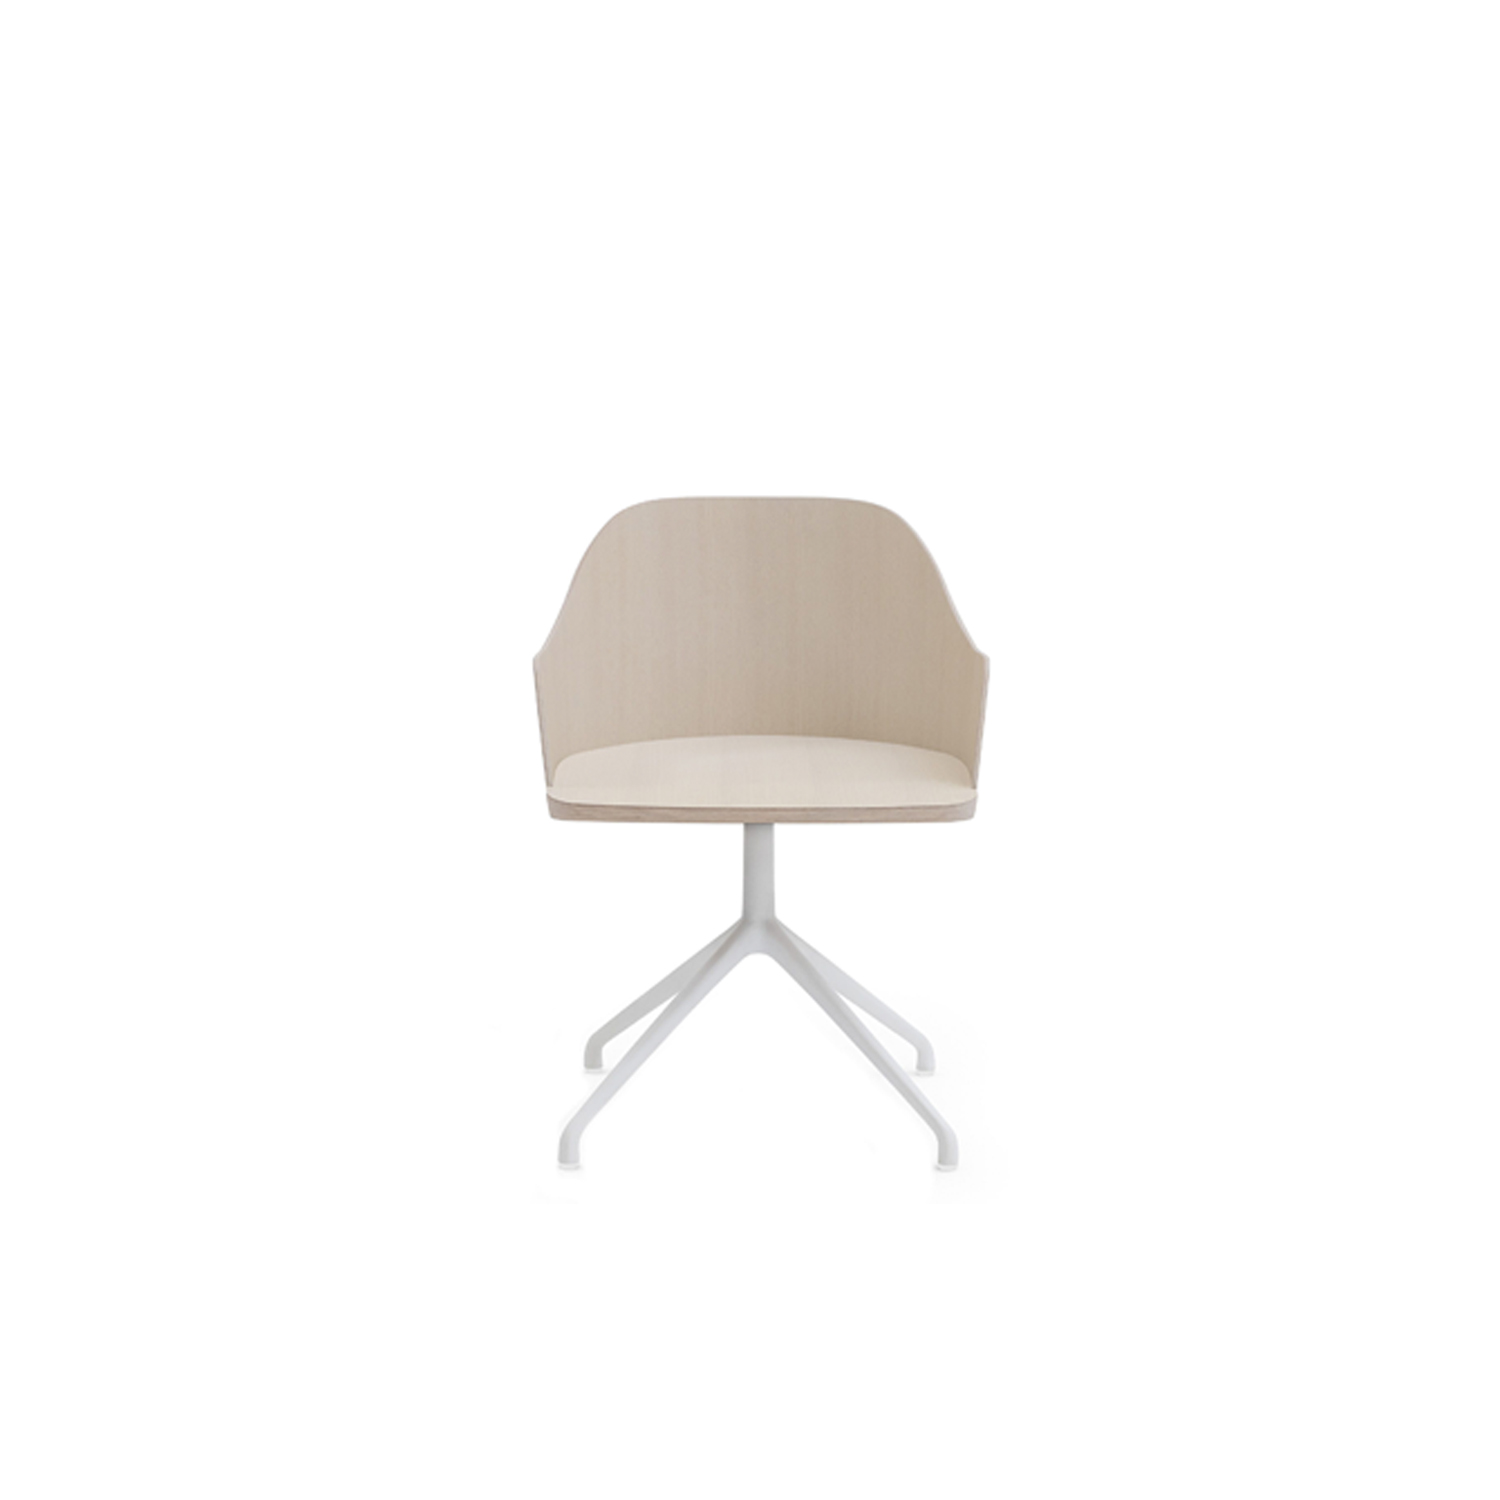 Fitt Swivel Armchair - This is the wooden chair as Billiani intends it, direct and timeless. The Valencian designer's intention is for versatility of use and multiple applications, with a striking level of comfort and intriguing proportions. The Fitt Classic collection starts with the light and refined ash chair with plywood shell. Alongside this, are armchair versions with a choice of lacquered metal frames: on four legs, sled, and swivel base. All models are available with wooden or upholstered seat.  | Matter of Stuff